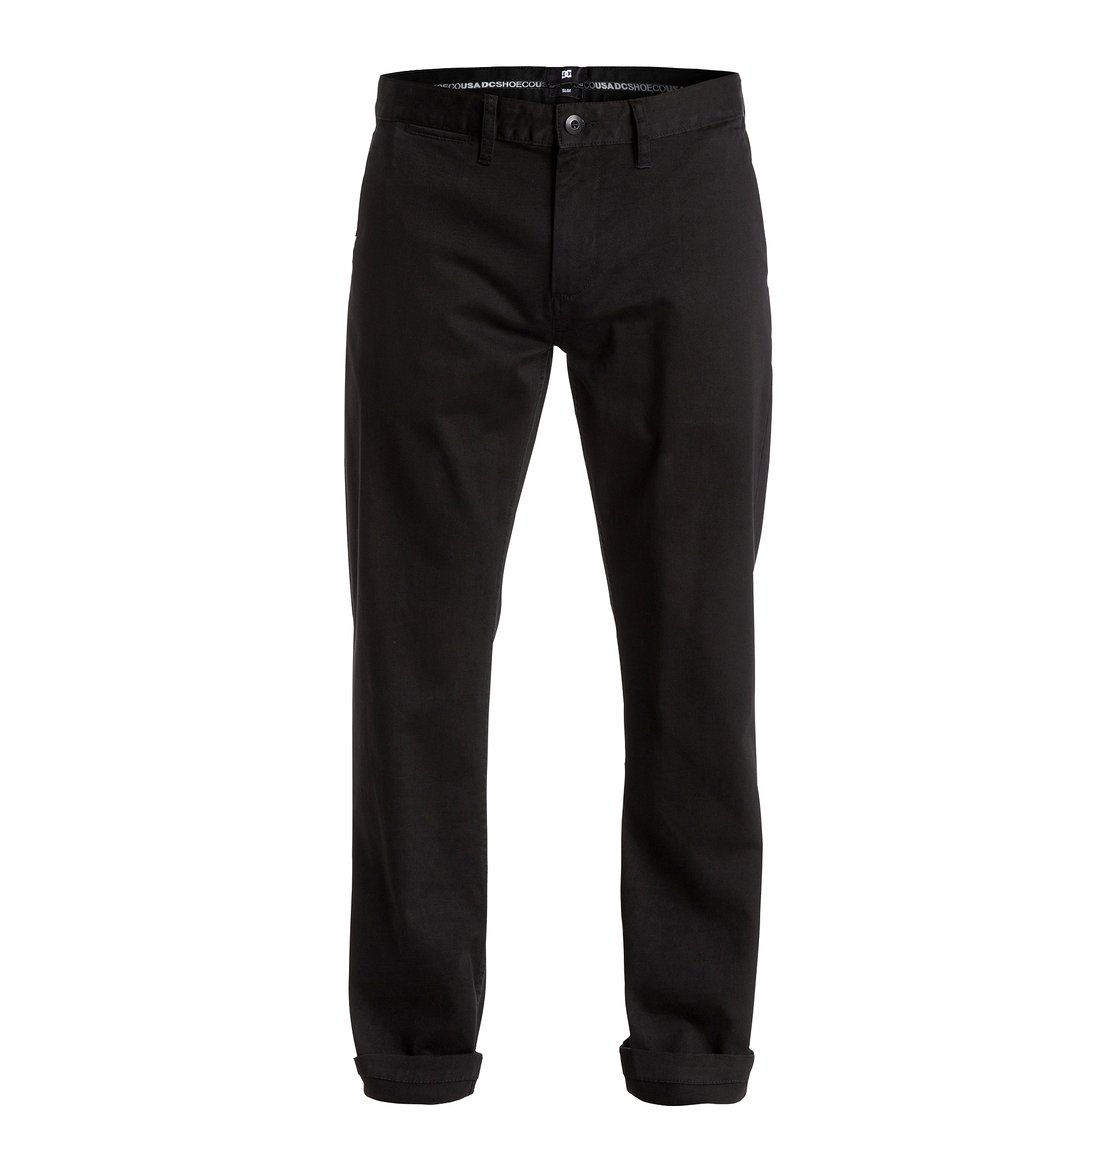 Worker Slim Fit Chino 32 - Dcshoes������� ����� Worker Slim Fit Chino 32 �� DC Shoes. <br>��������������: ������ ���������� �����, ����� ����, ��������� �������� �������, ������� �� ������, ����� � ��������� DC ��� ������ ��������, ��������� ������ ��� ������ �������, ������������ ������� ������� �����. <br>������: 98% ������, 2% �������.<br>